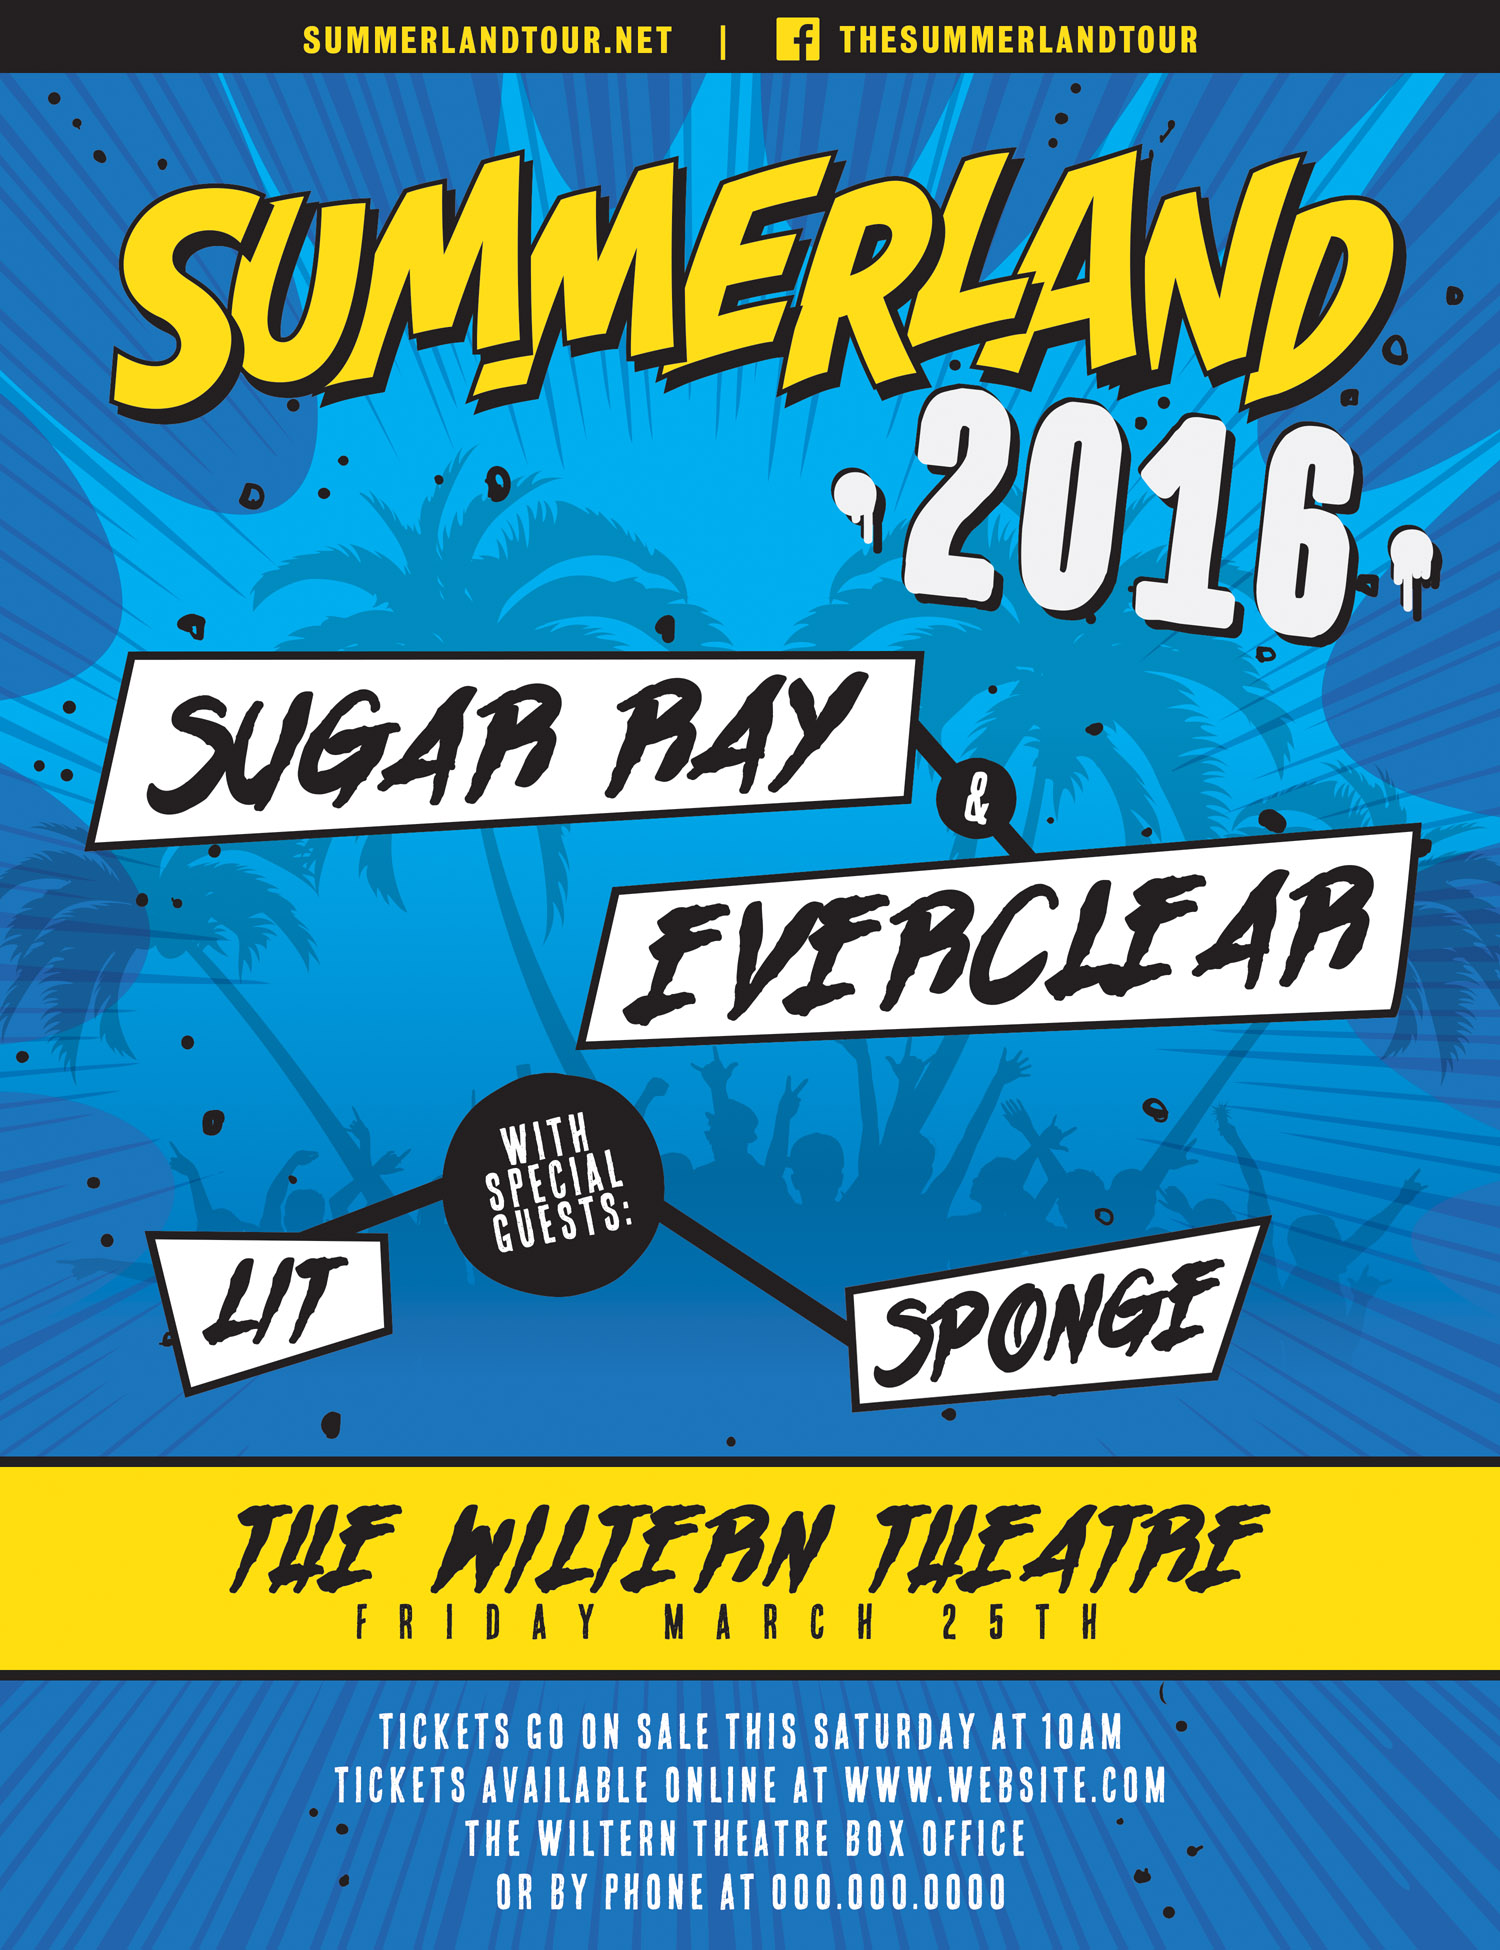 SUMMERLAND TOUR 2016